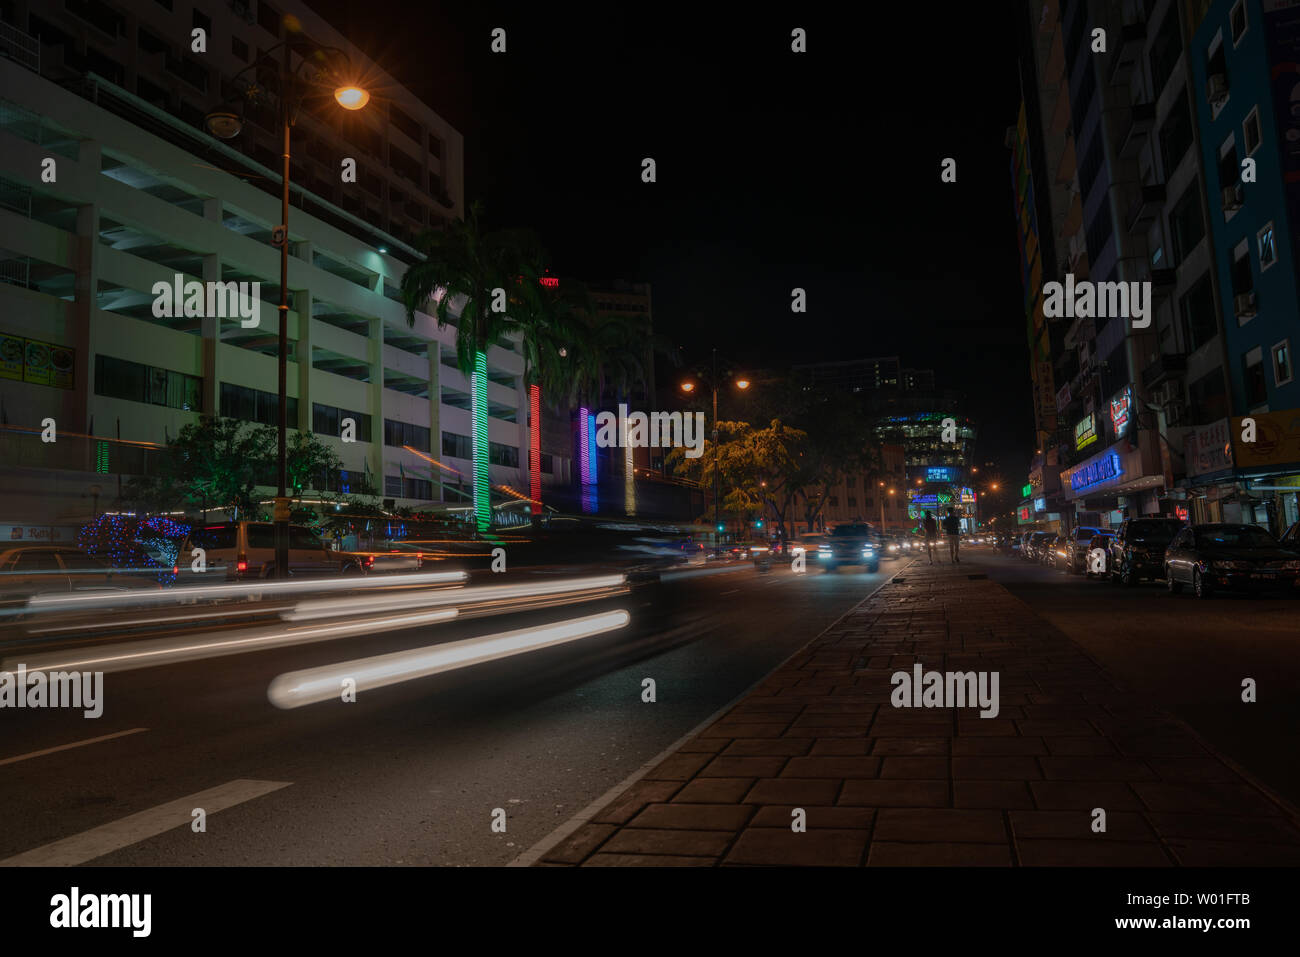 KOTA KINABALU BORNEO - MAY 30 2019; Street scene with neon lights and light trails from moving cars in long exposure - Stock Image